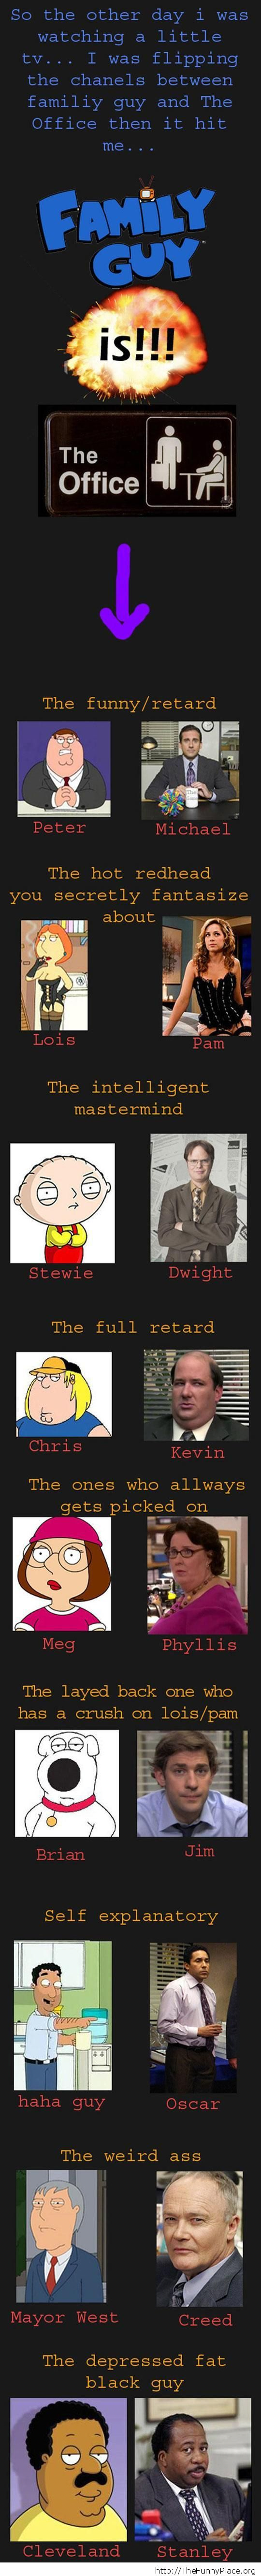 Family Guy and The Office